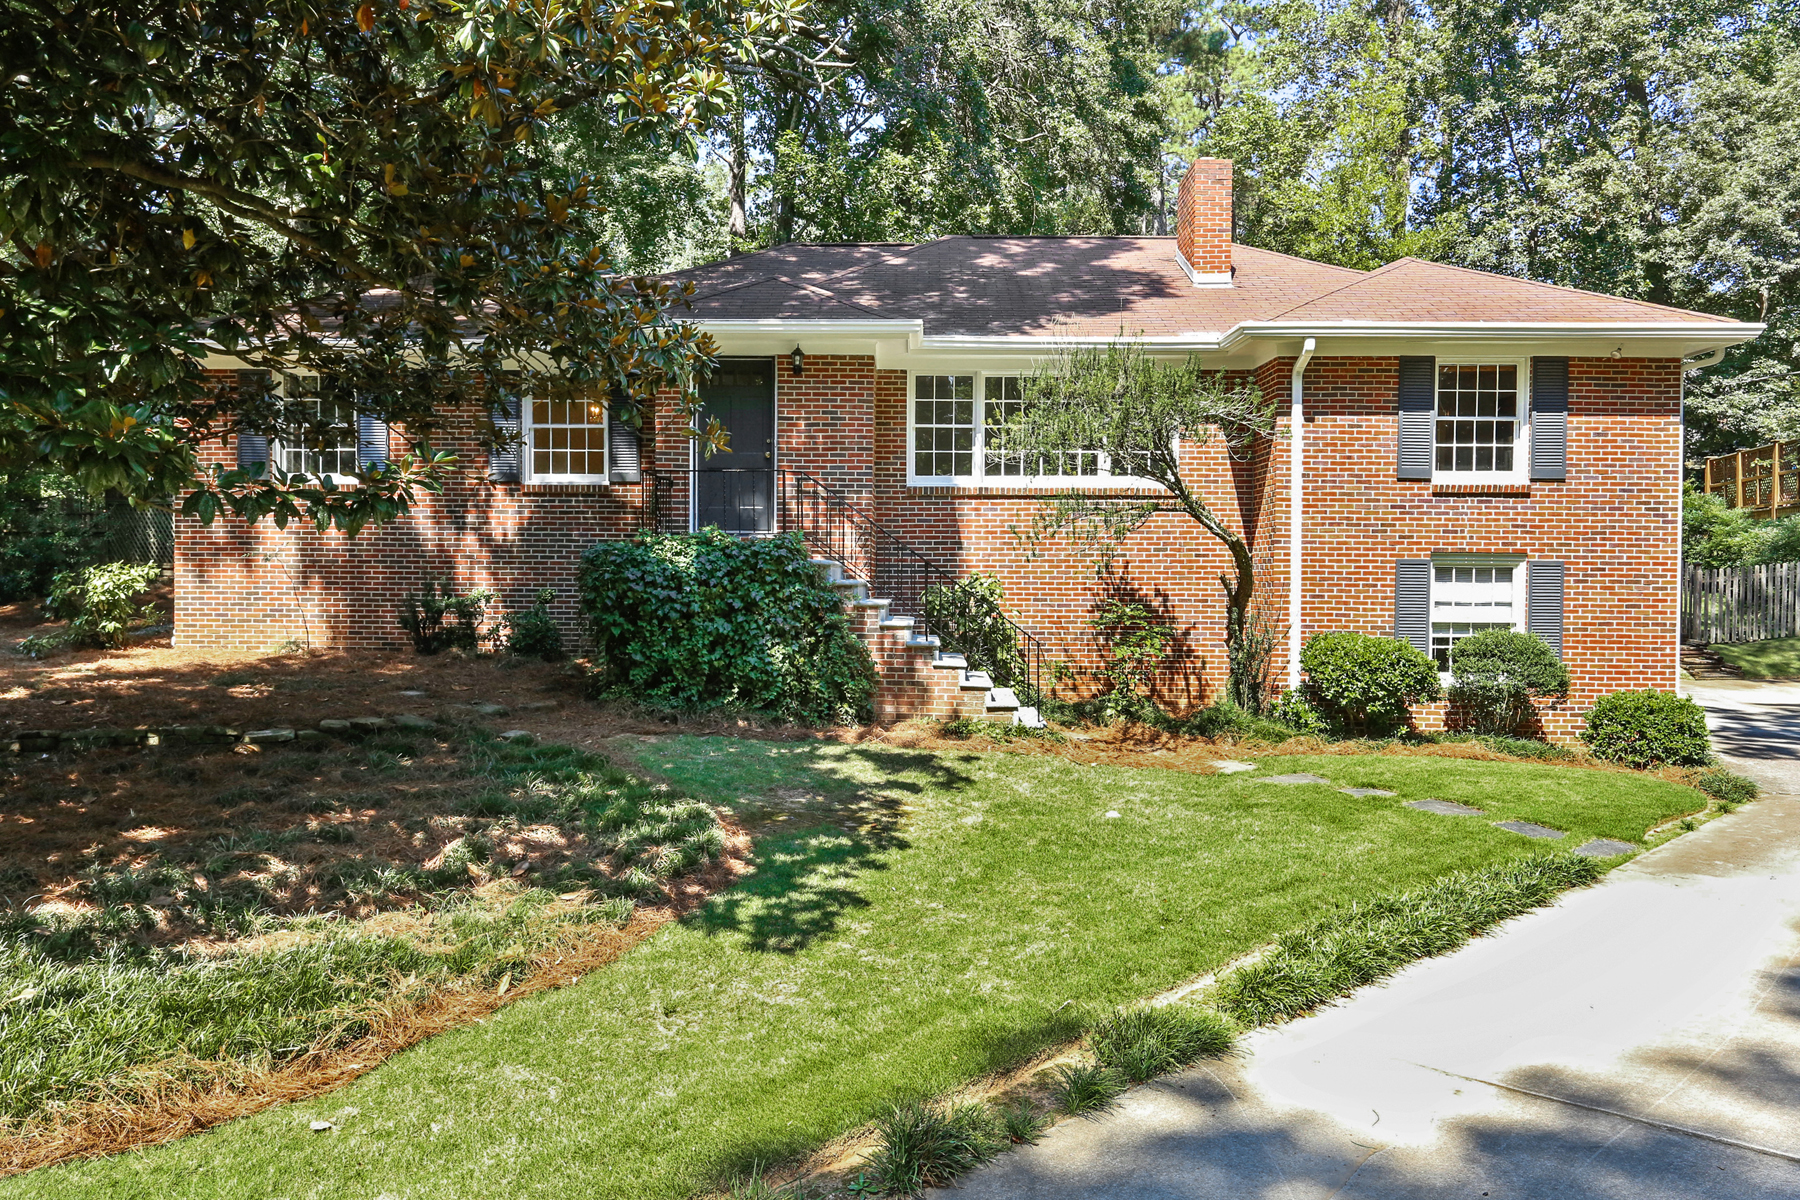 Single Family Home for Sale at Charming Brick Ranch On A Large Lot With Incredible Backyard 388 Lakemoore Drive Atlanta, Georgia 30342 United States